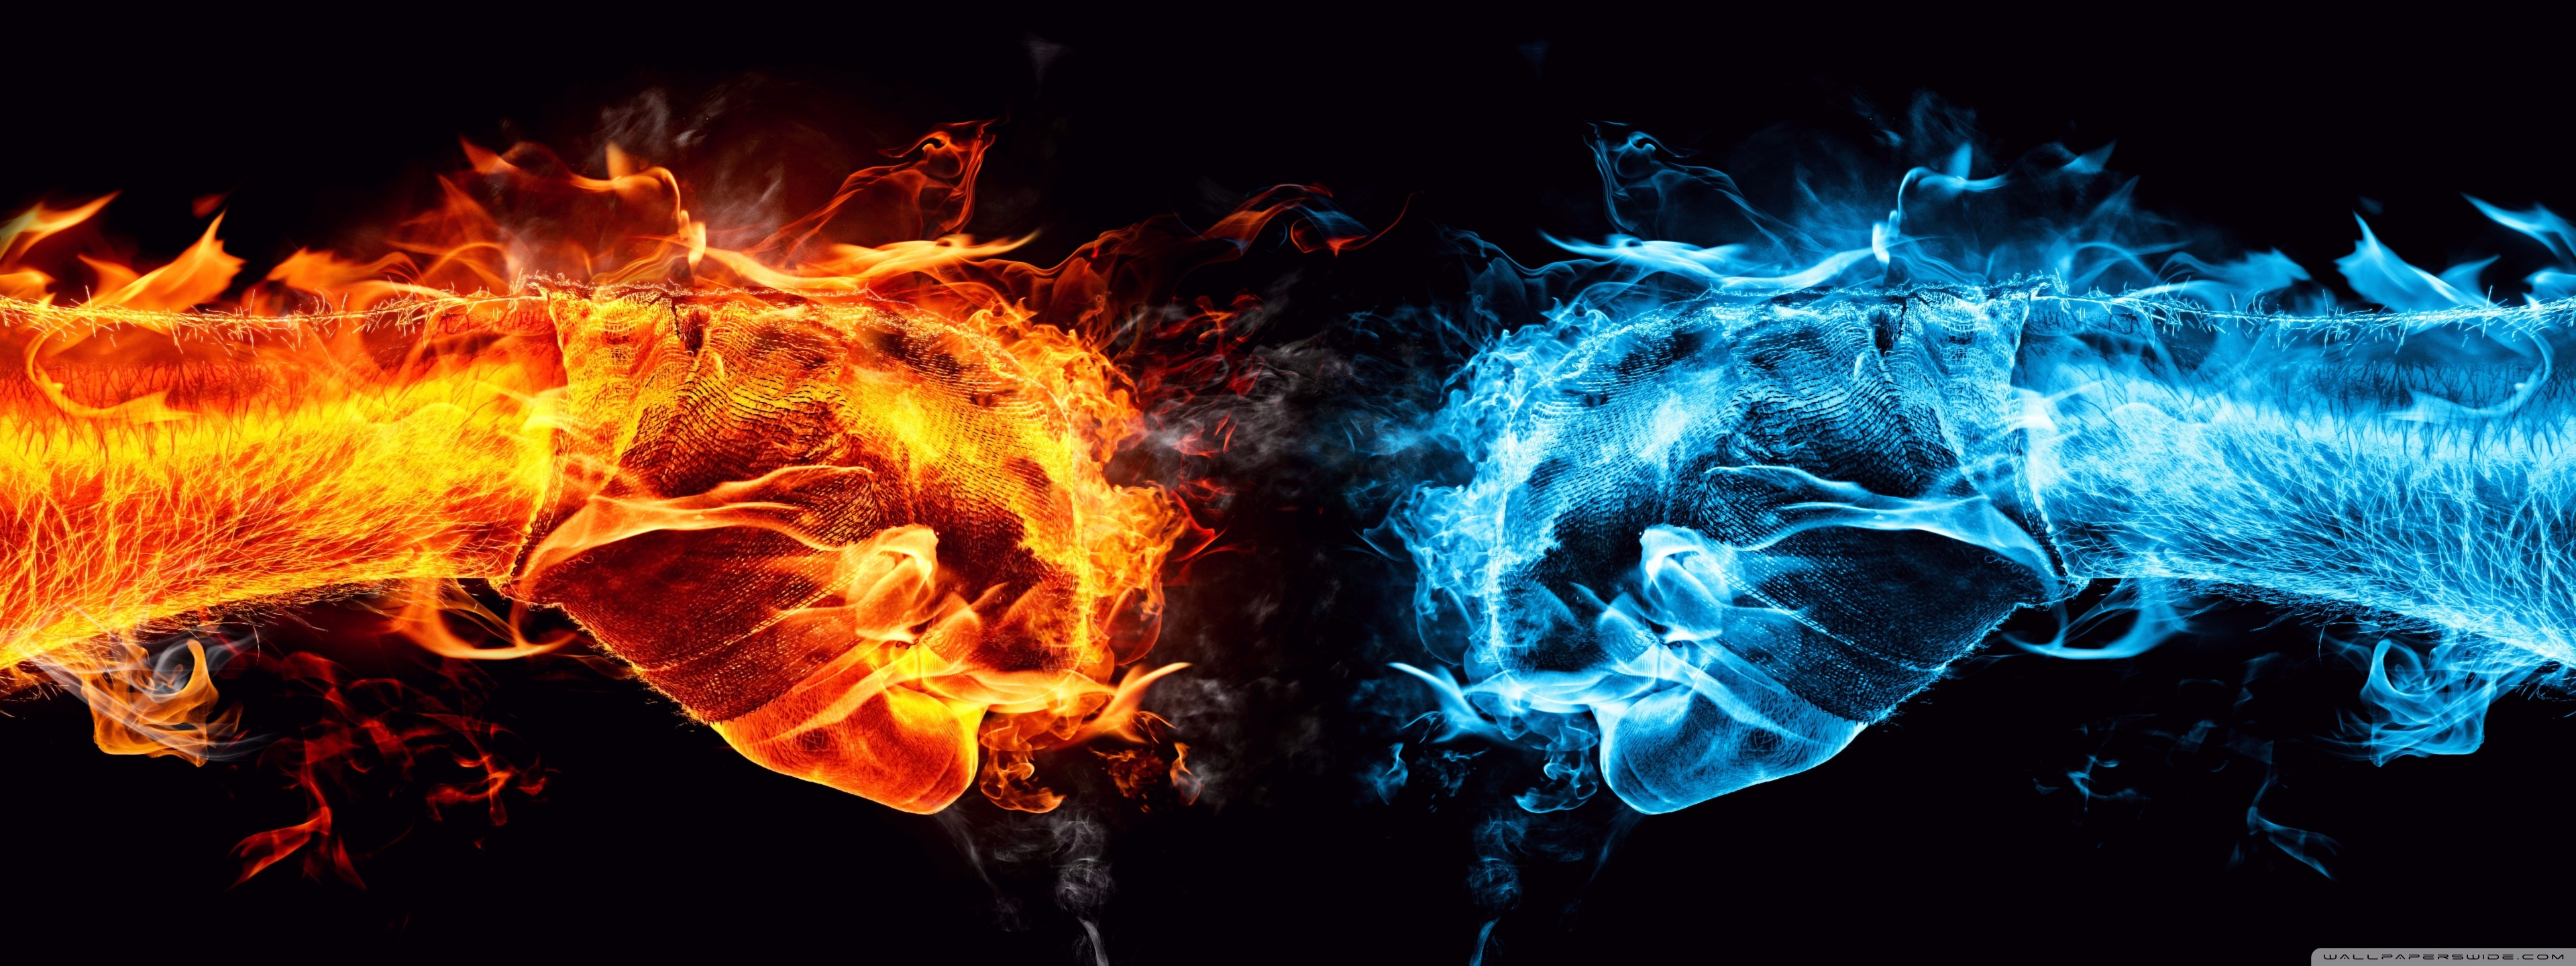 Wallpaper Water and Fire